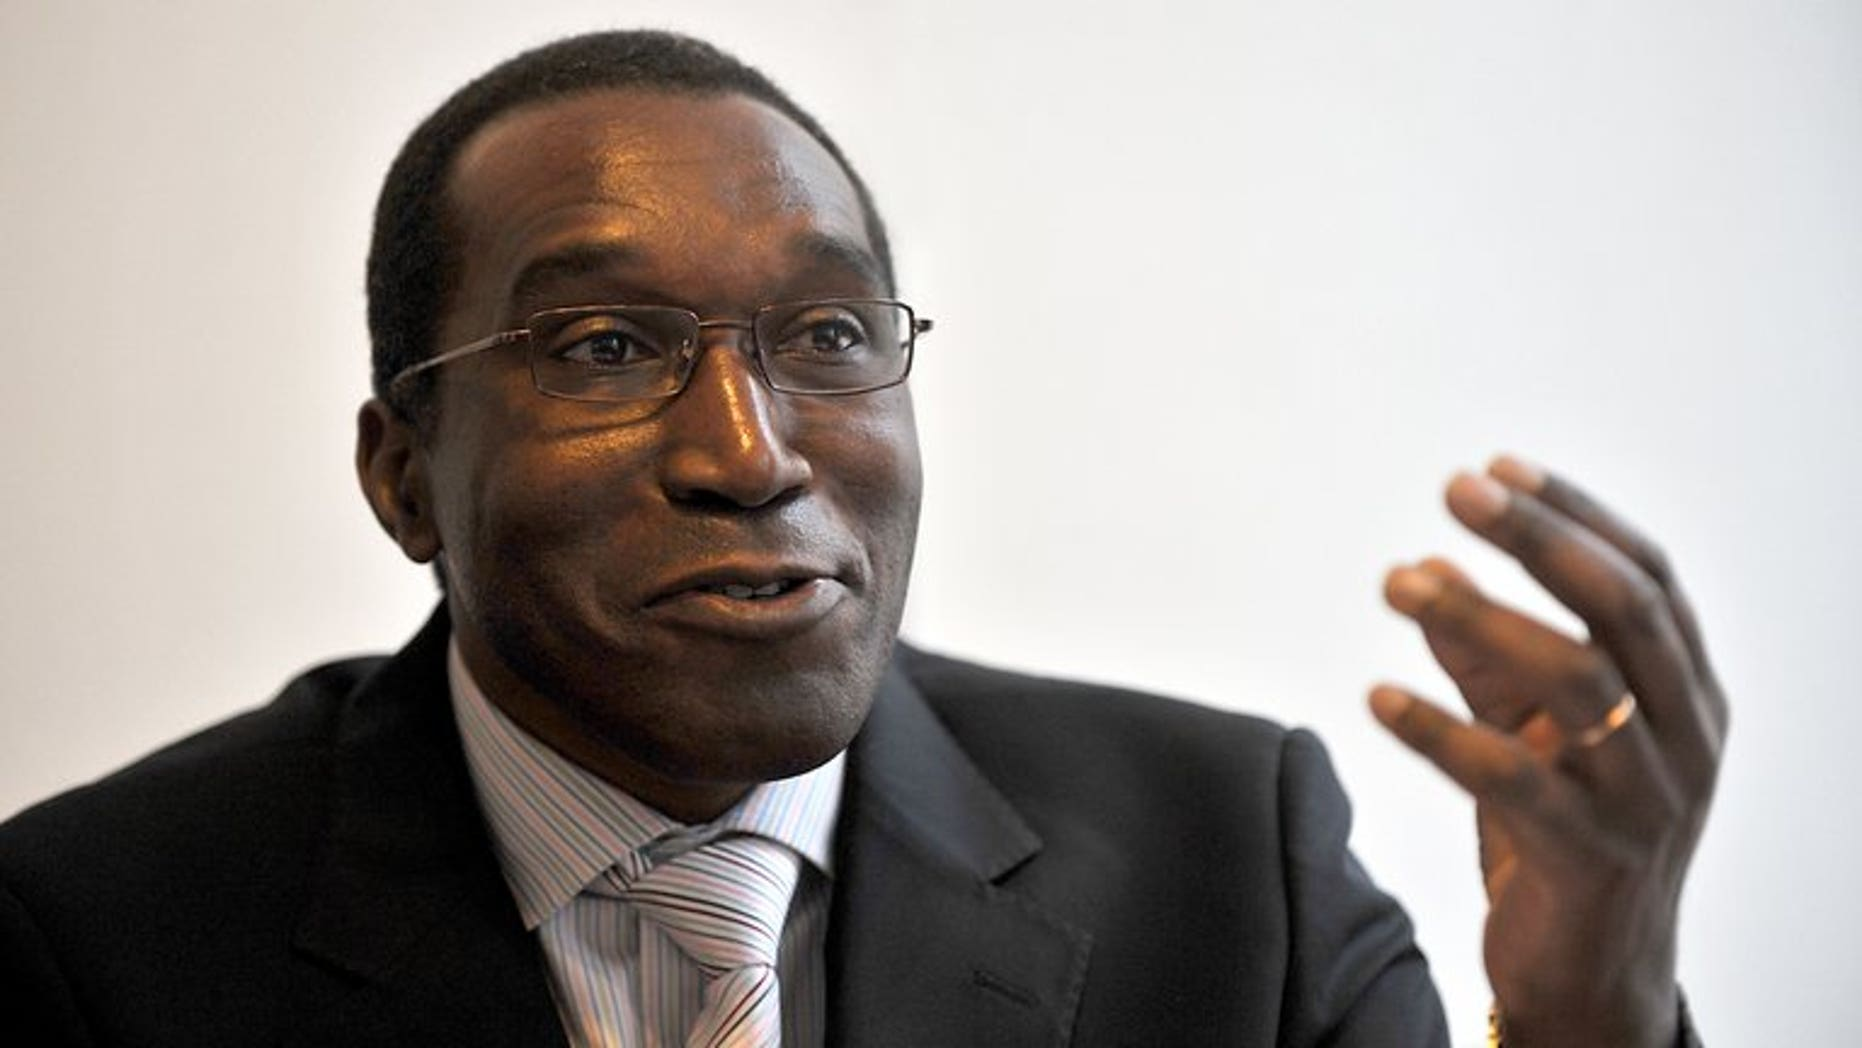 """Rwandan doctor Eugene Rwamucyo gives an interview in Lille on October 24, 2009. French judges have charged Rwamucyo for planning to """"commit the crime of genocide"""" in 1994, a judicial source said, after Kigali issued an international warrant against him."""